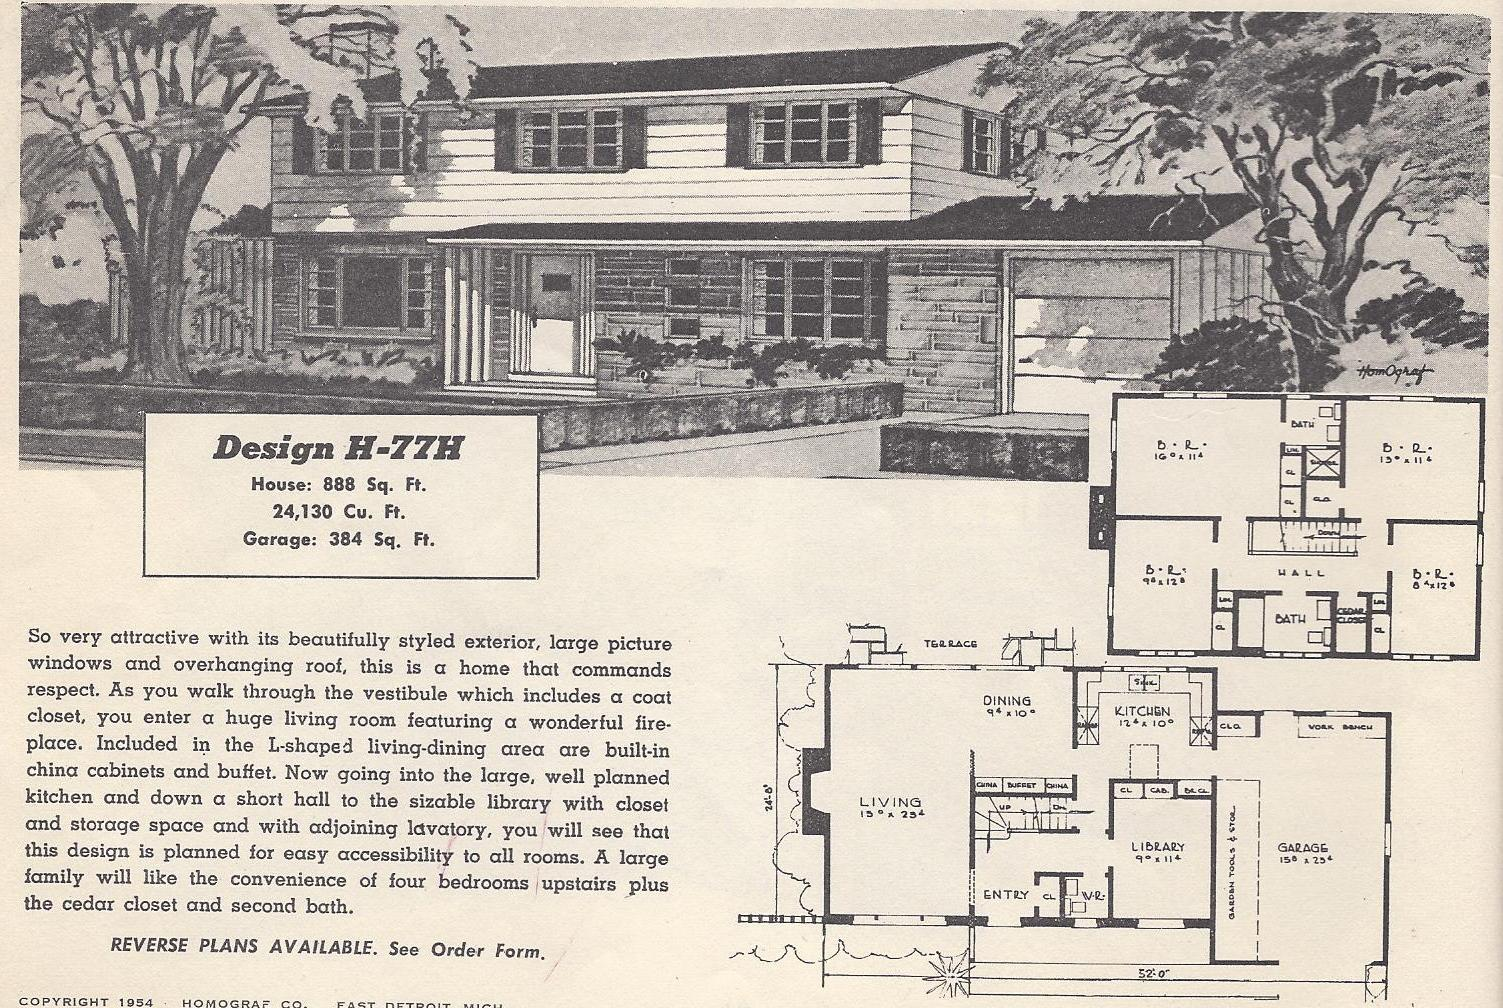 Vintage house plans 77h antique alter ego for Vintage home plans